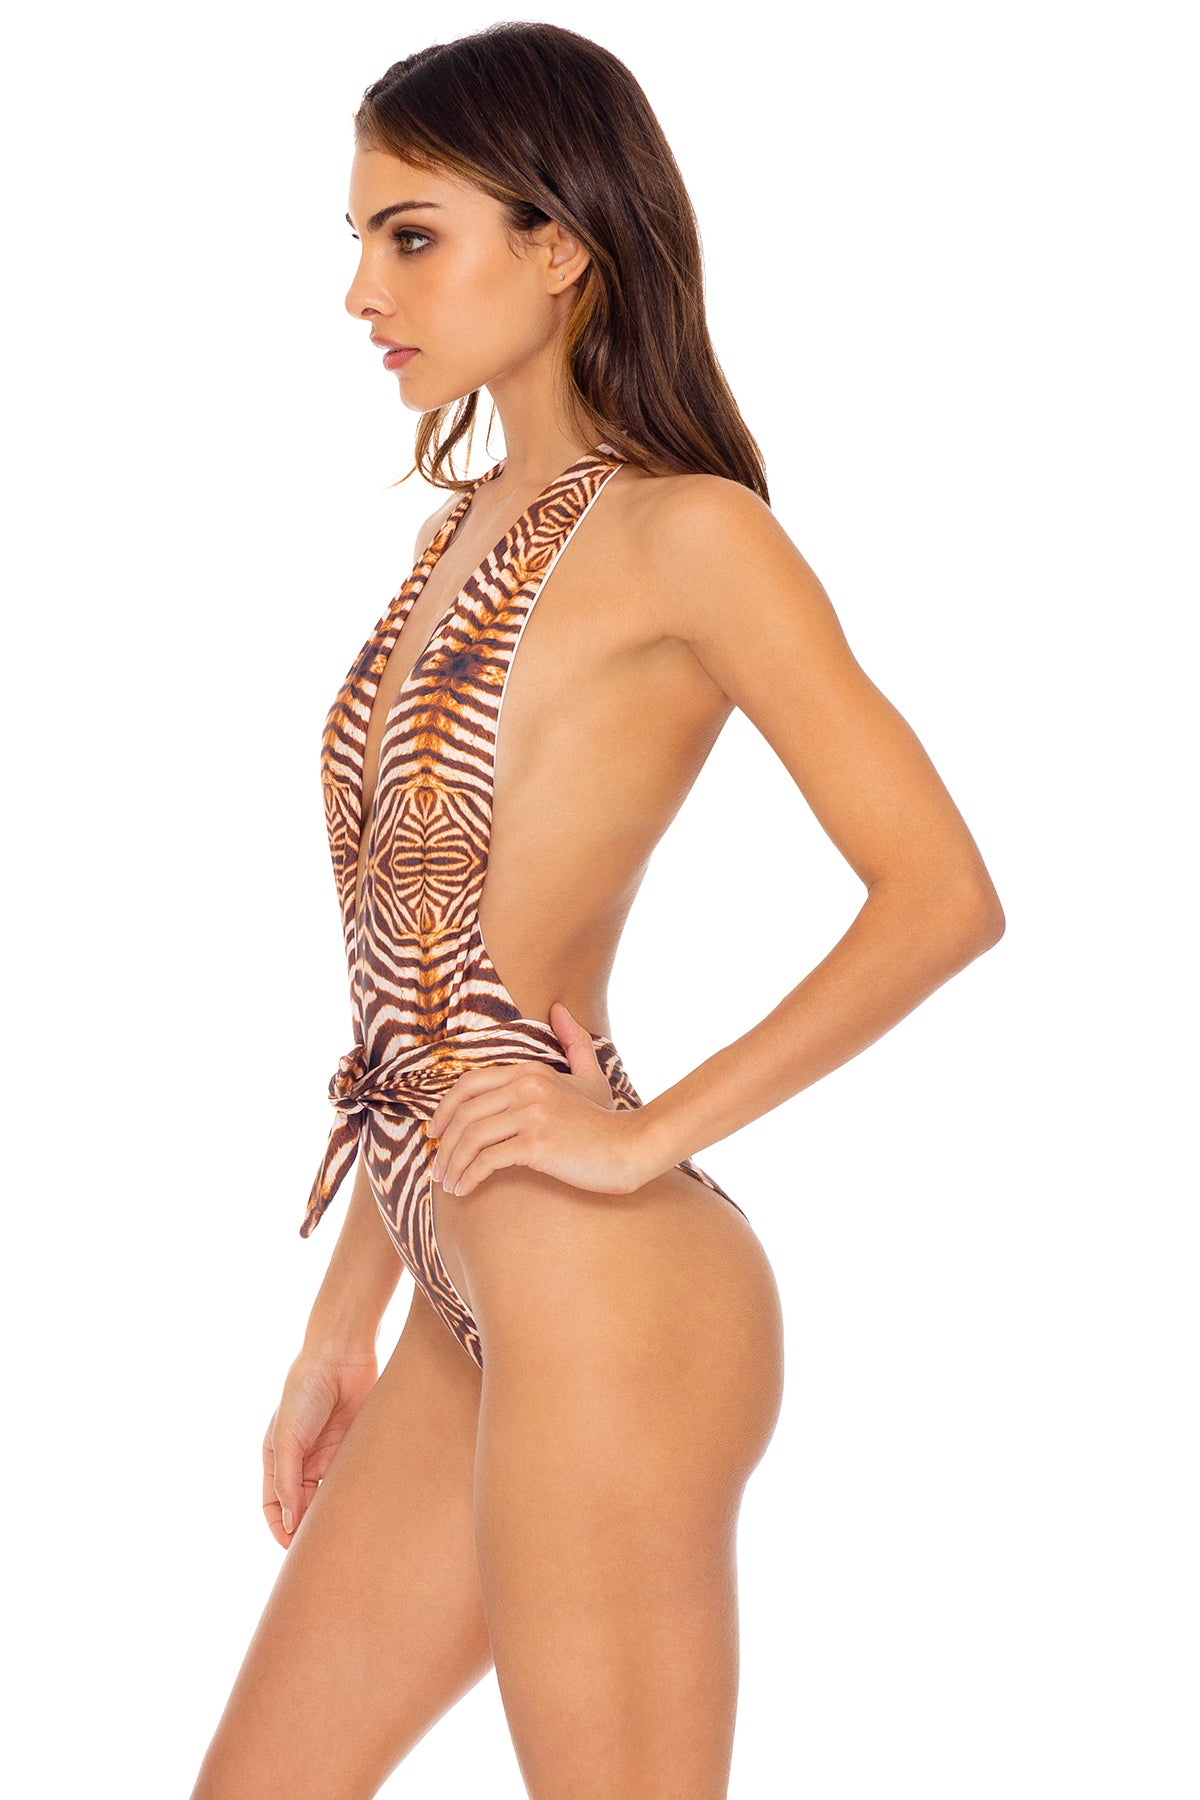 SAFARI DREAMS - One Piece Bodysuit • Brown